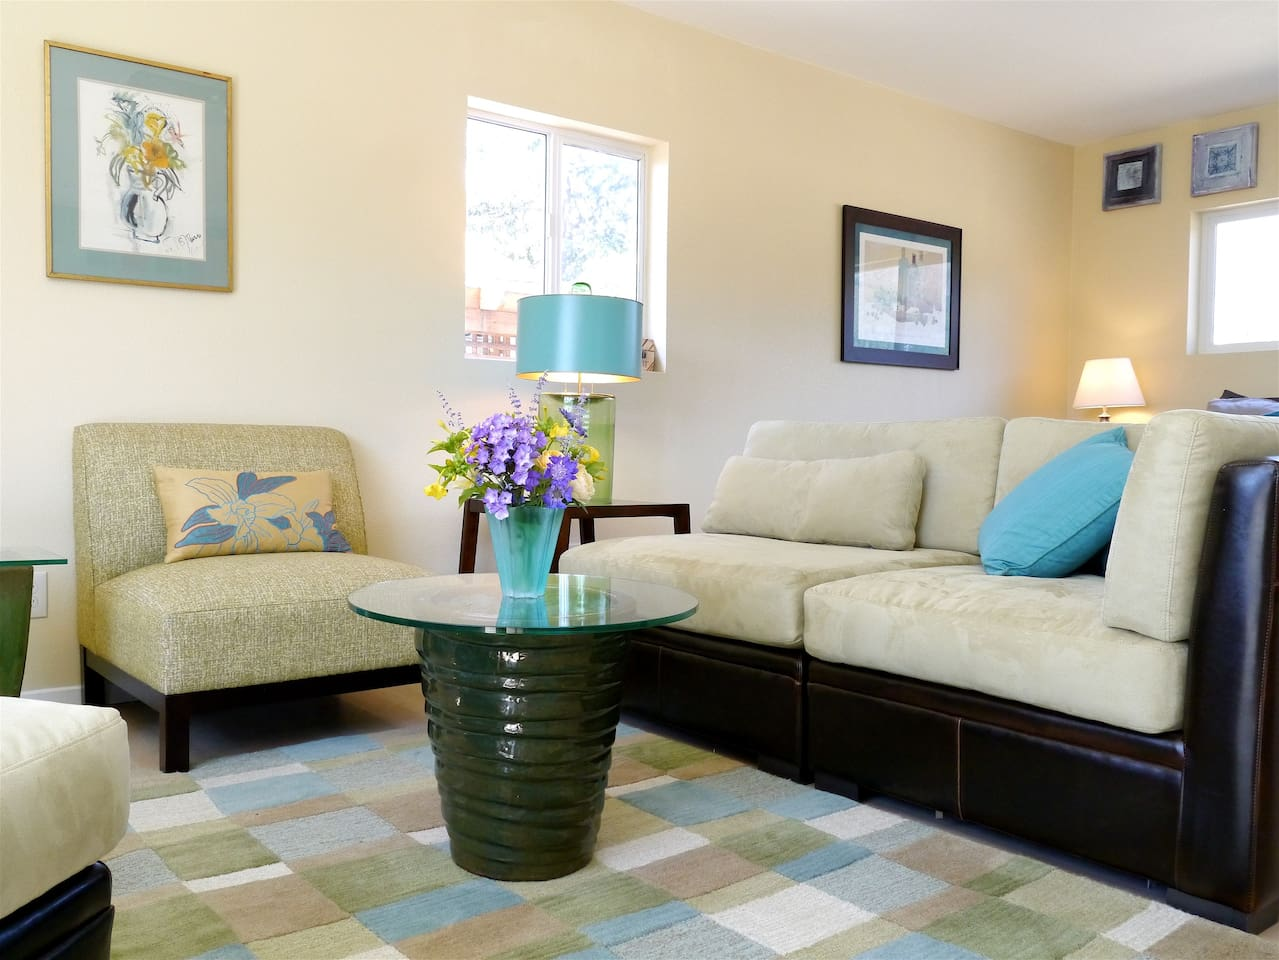 The Happy Hound Cottage: fresh, clean, new, private get away for two.